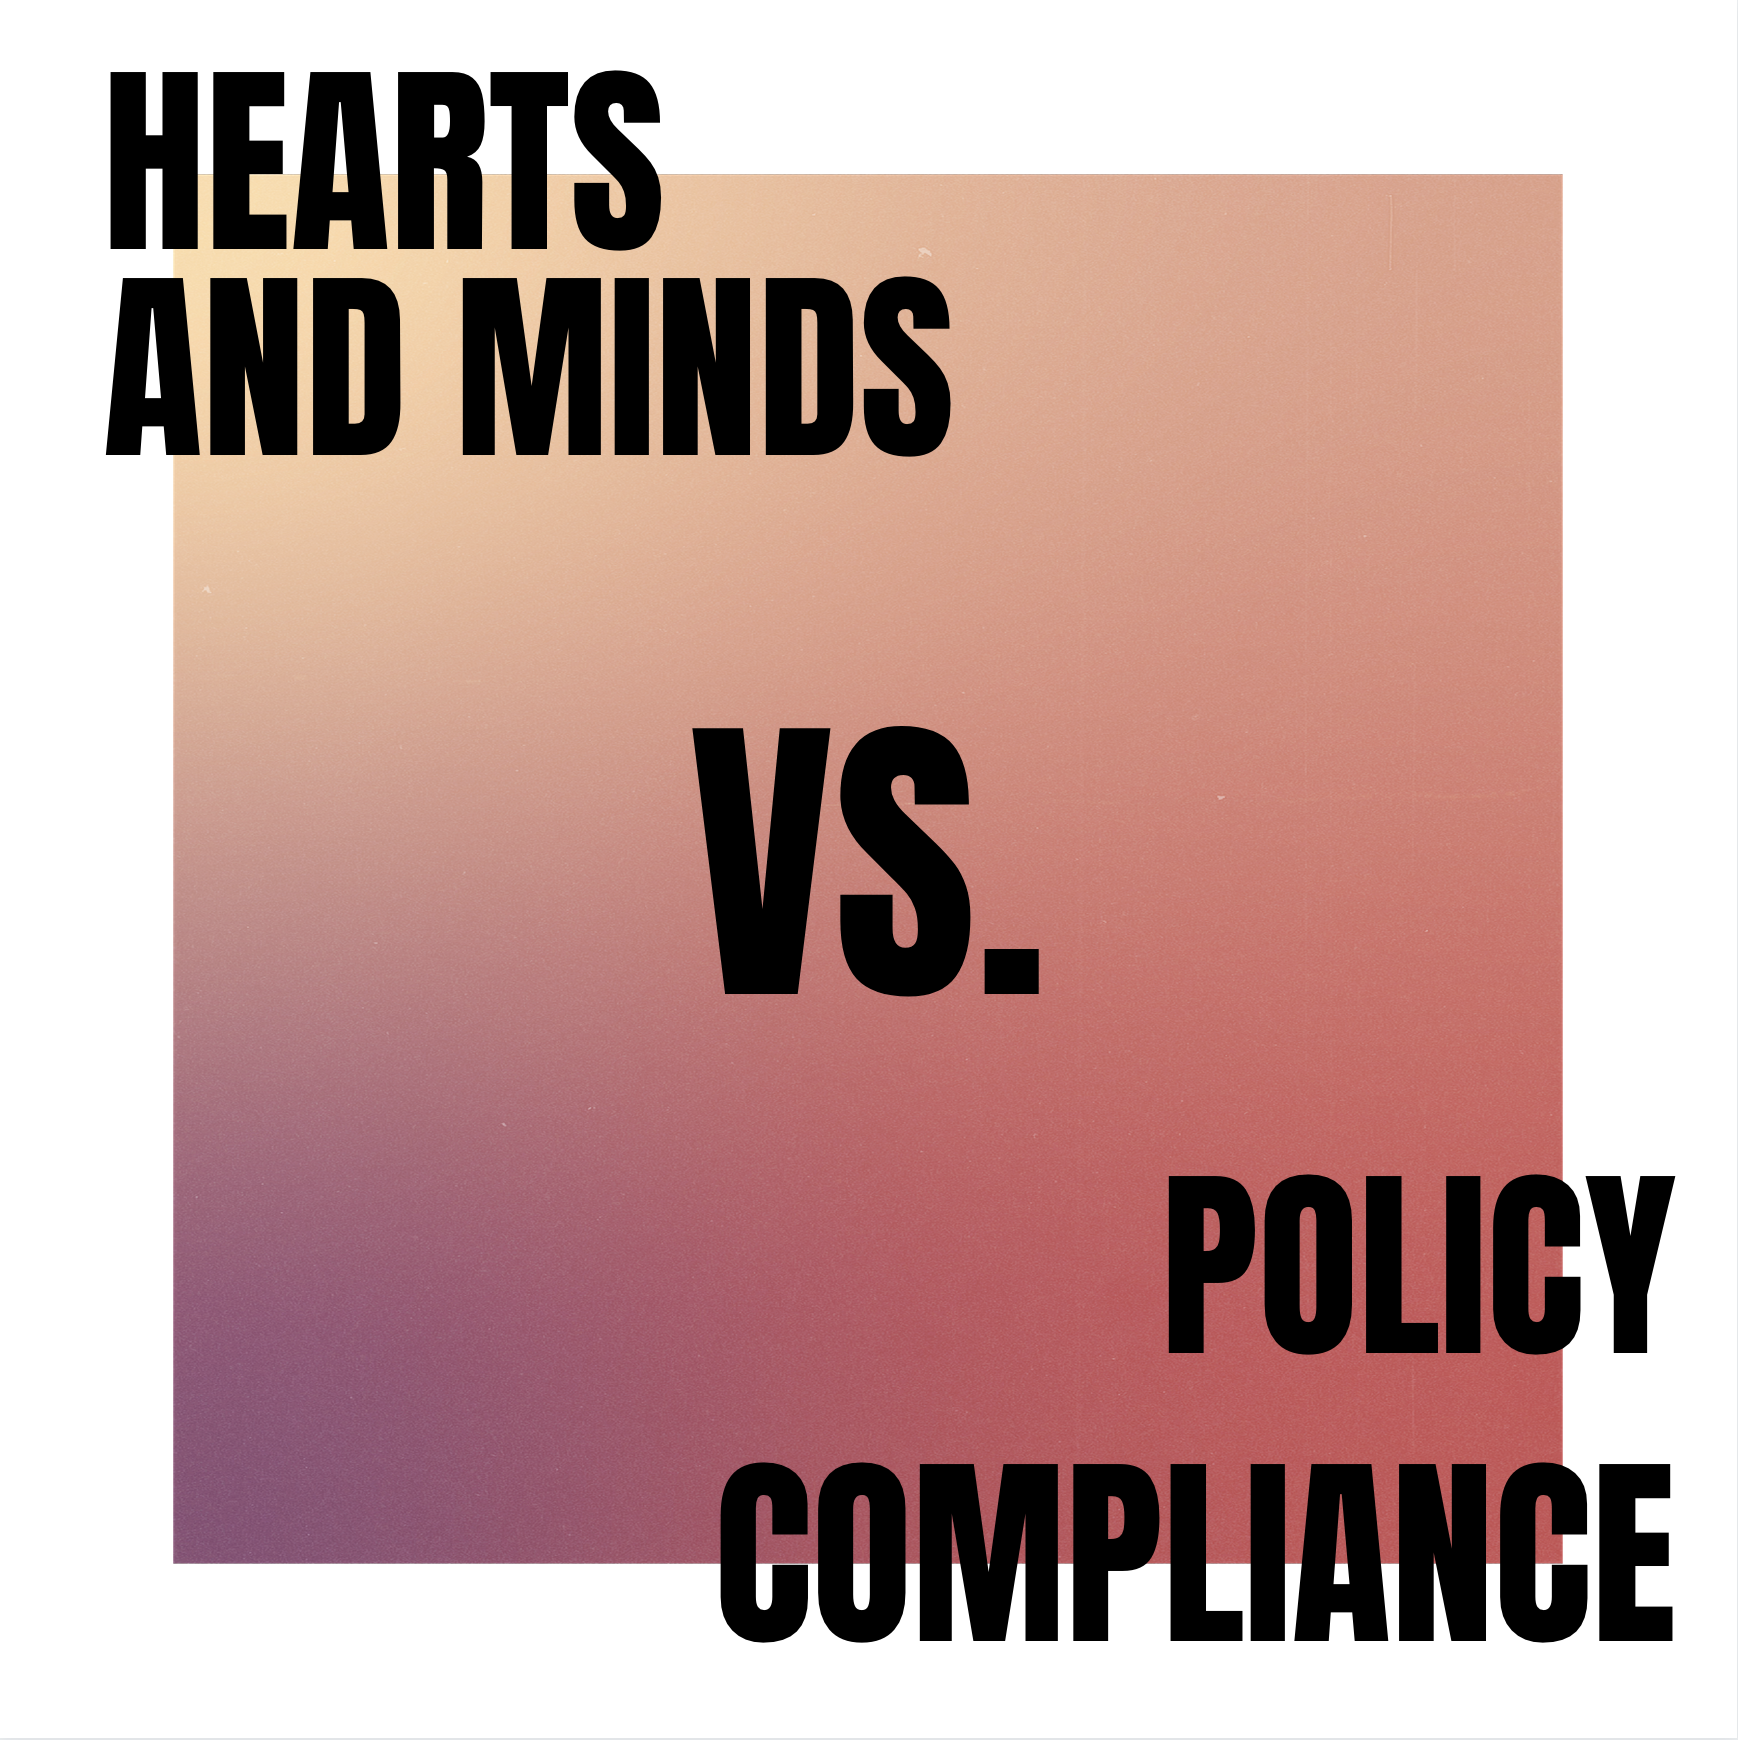 Hearts and Minds vs. Policy Compliance